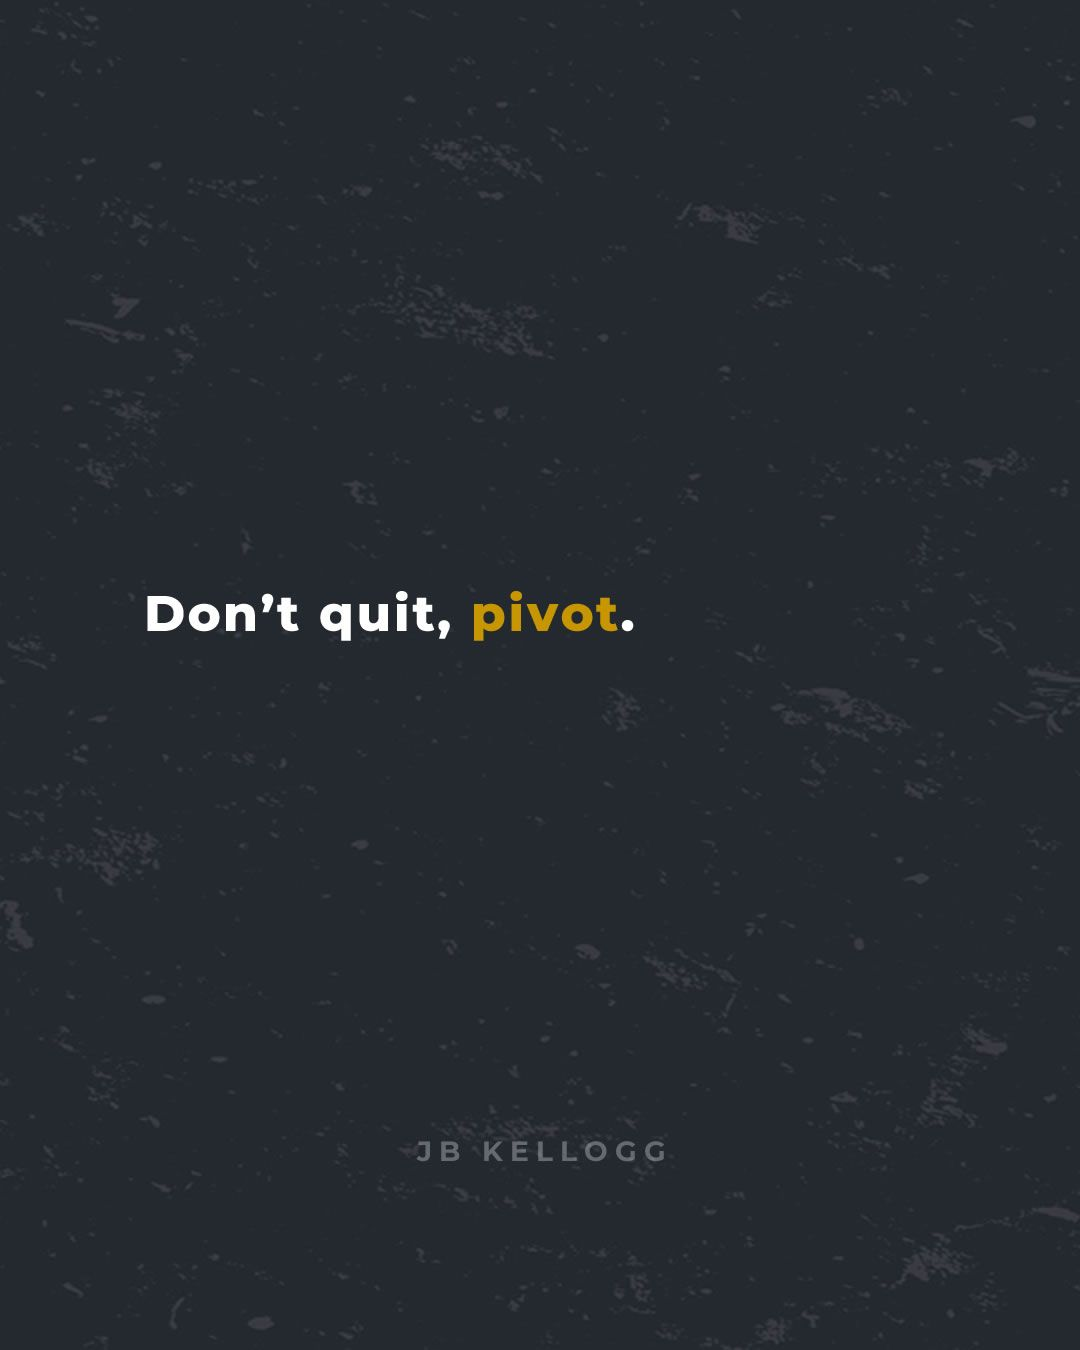 don't quit, pivot - quote by jb kellogg.jpg